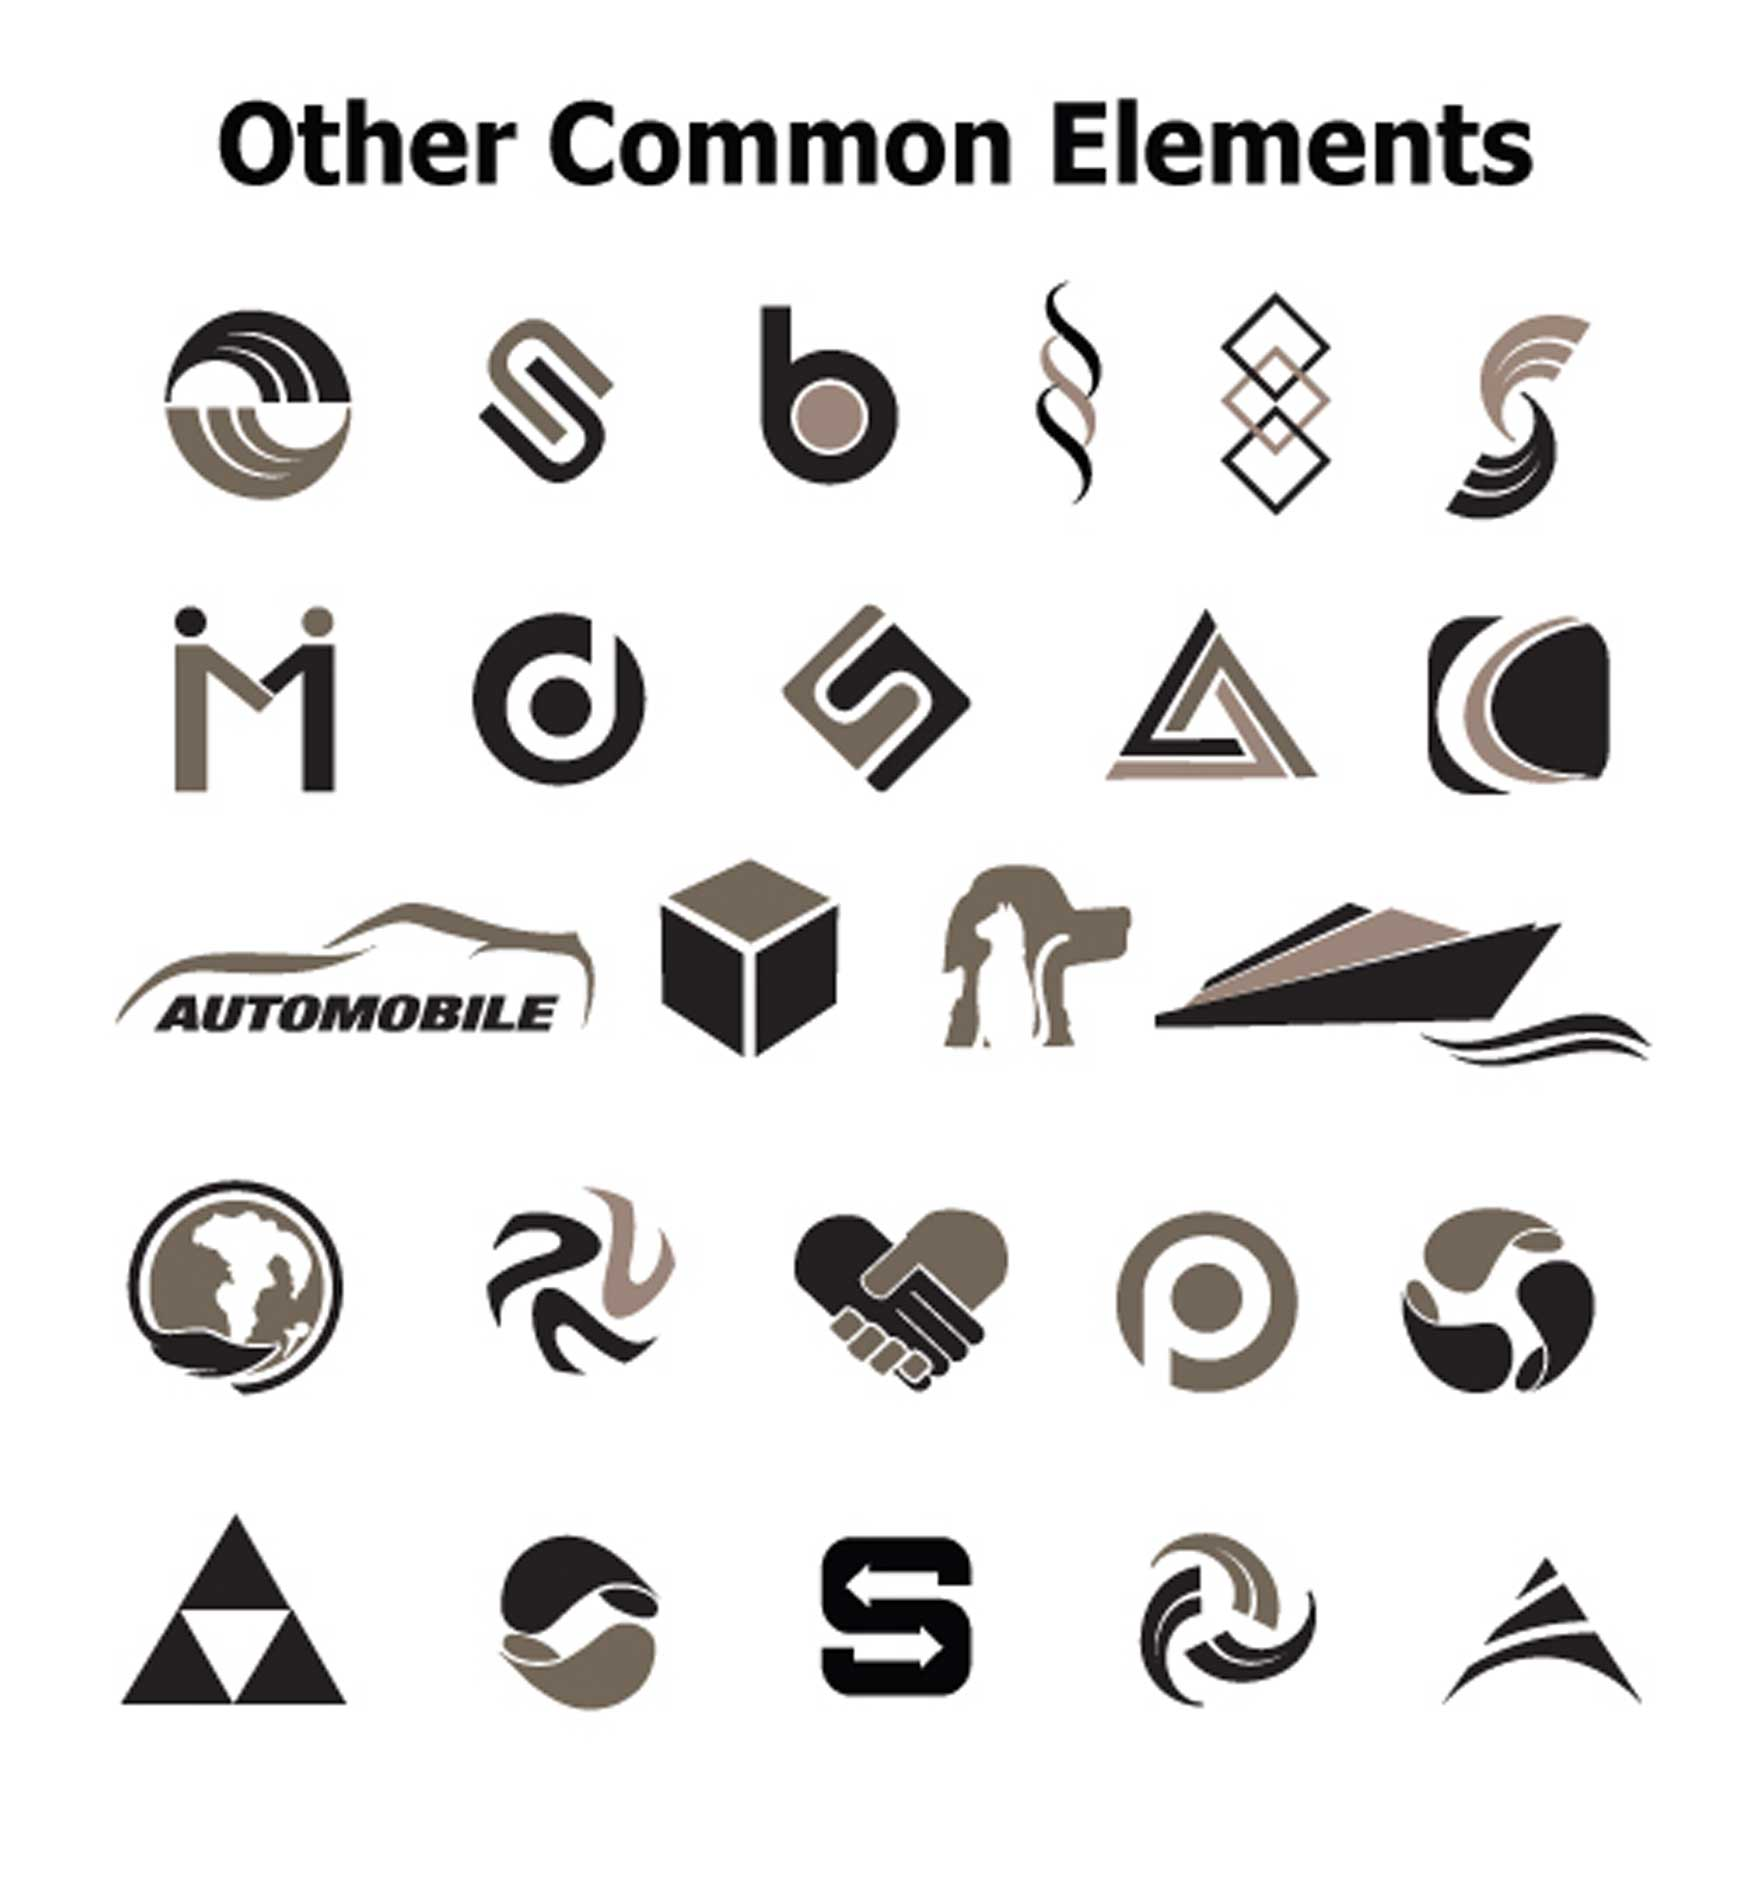 other common overused logo concepts to avoid